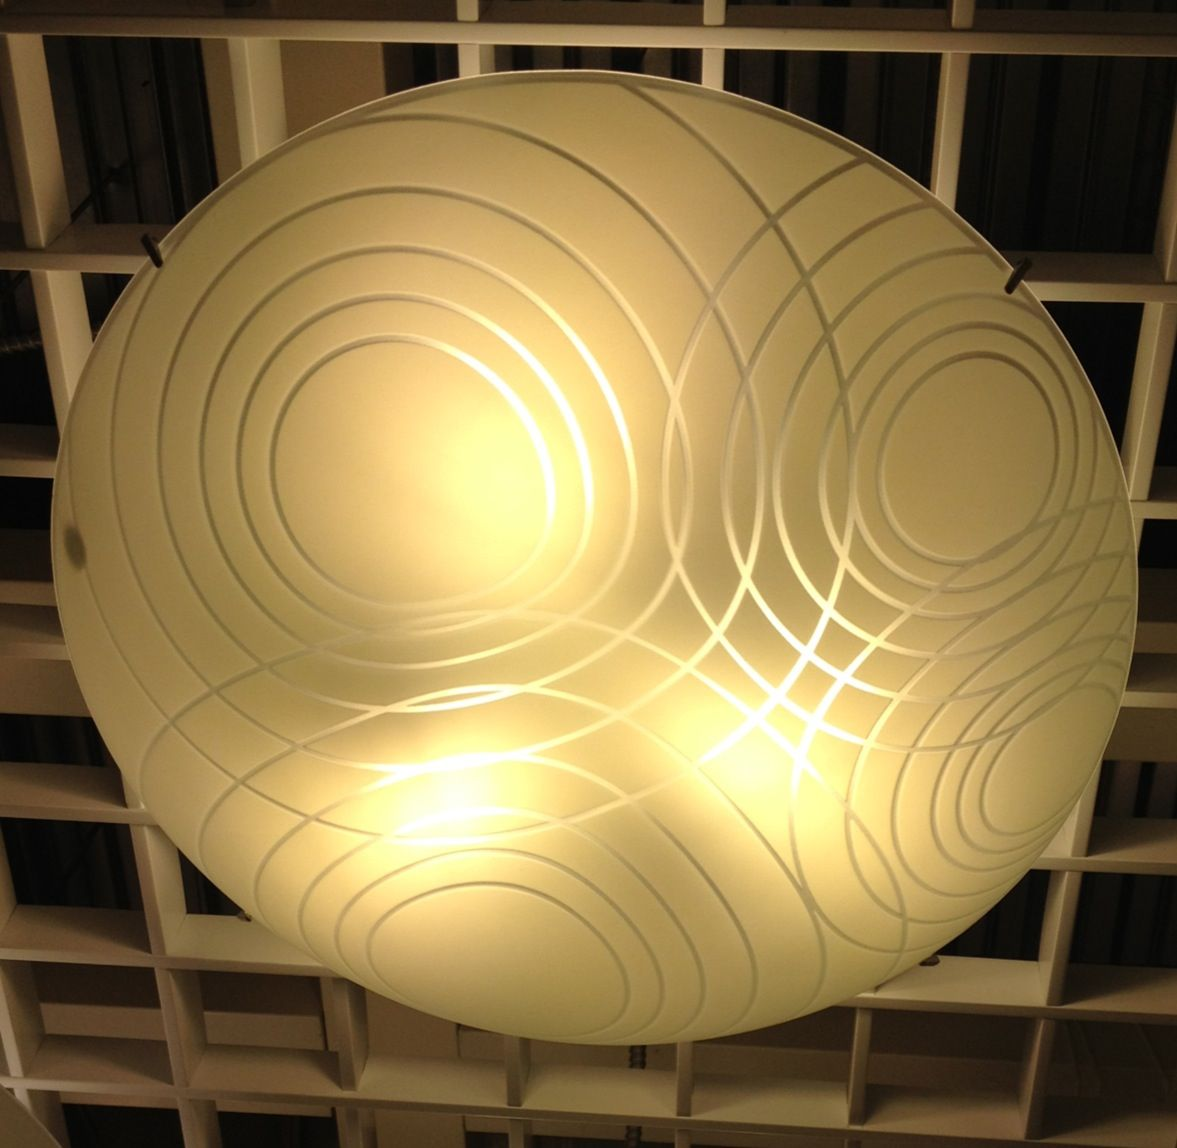 Purchased Ikea Calypso Circles Ceiling Fixture For Entry Laundry